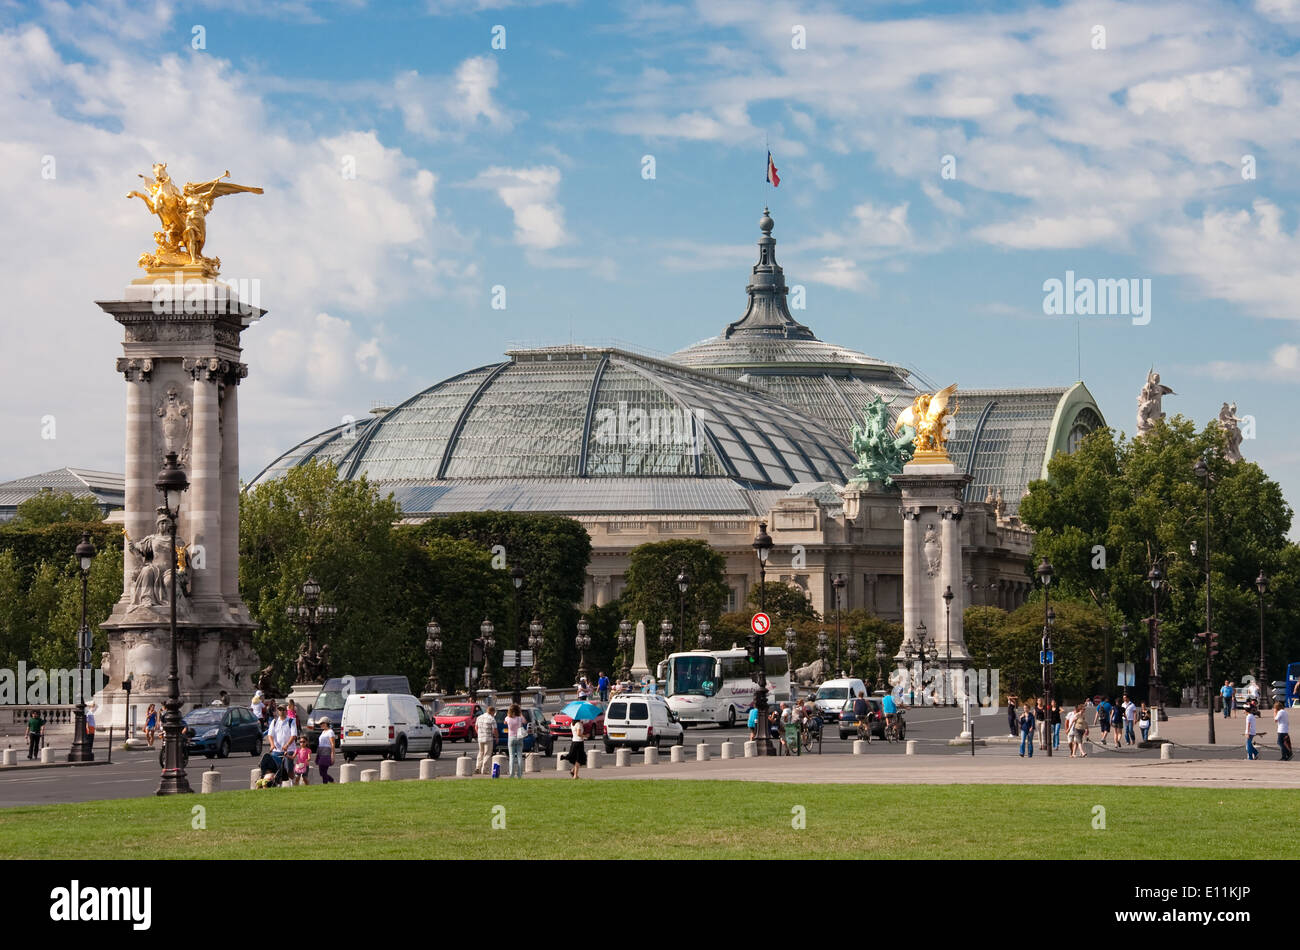 Grand Palais in Paris, Frankreich - Grand Palais and Pont Alexandre III in Paris, France Stock Photo